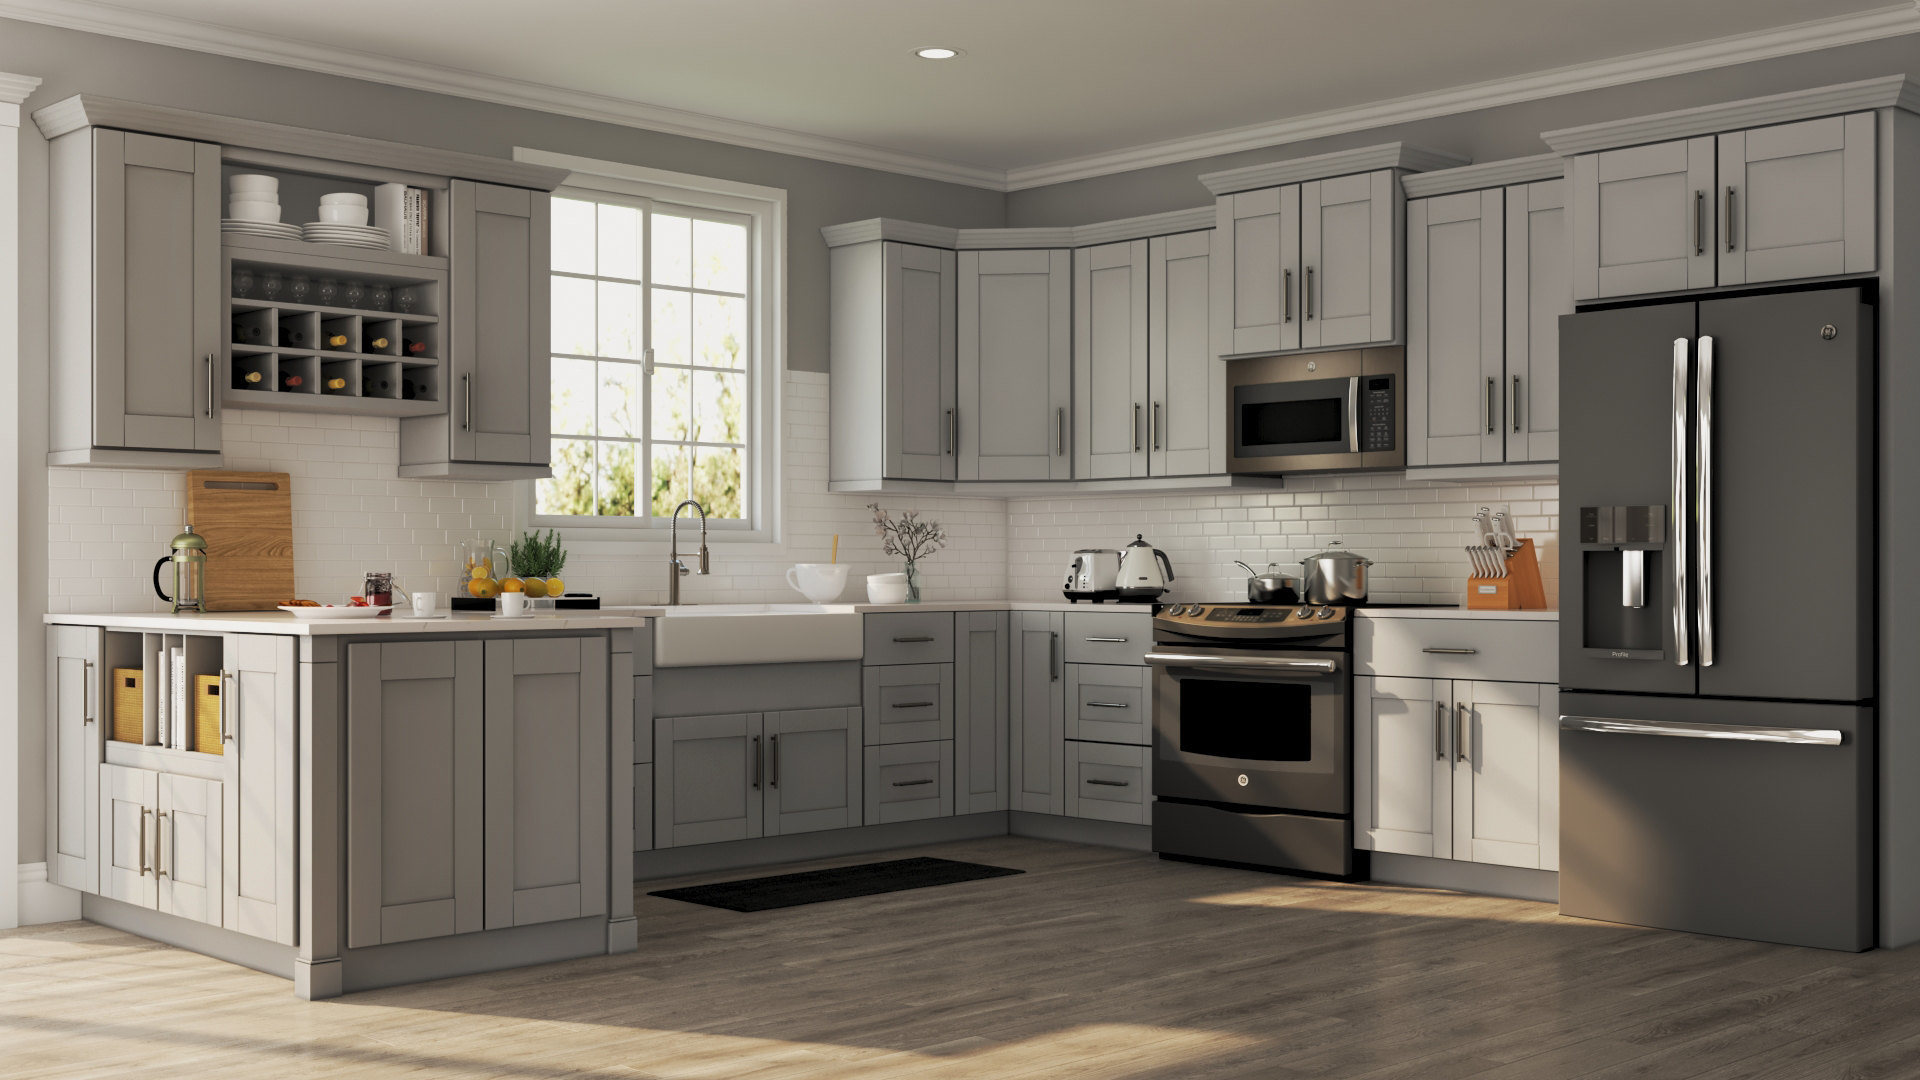 Shaker Specialty Cabinets in Dove Gray Kitchen The